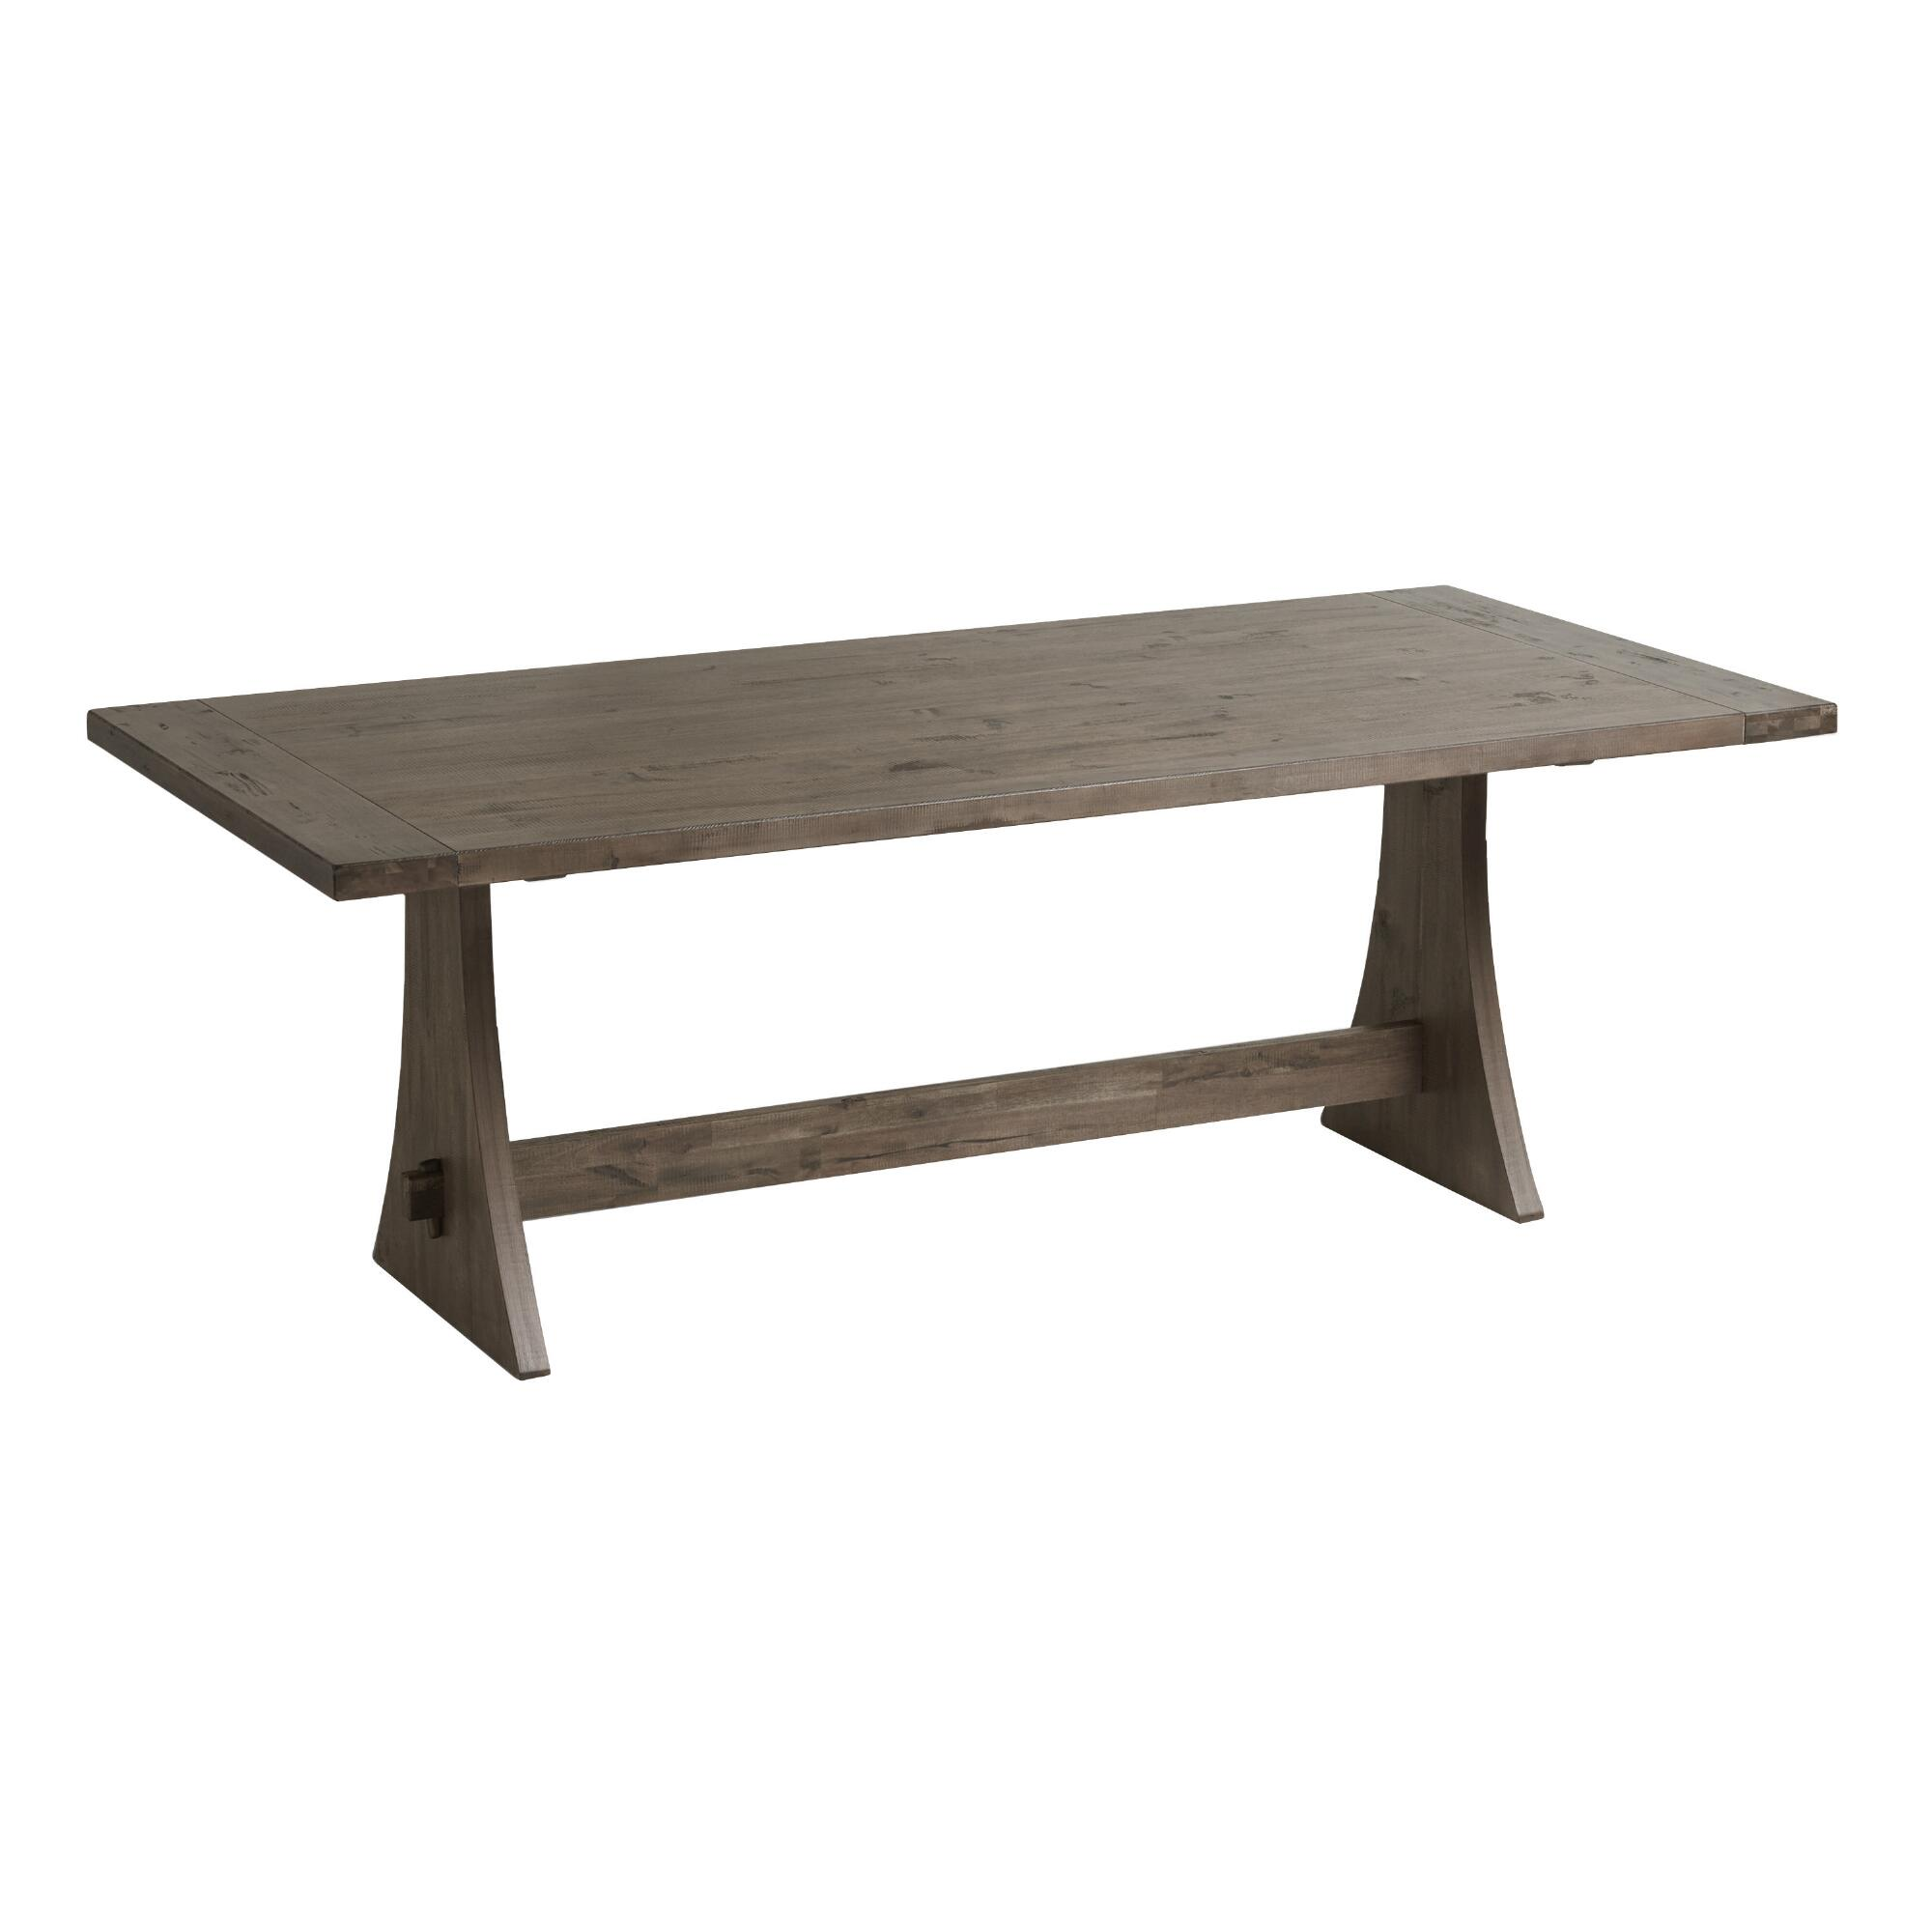 Rustic Wooden Dining Tables ~ Rustic wood brinley fixed dining table world market